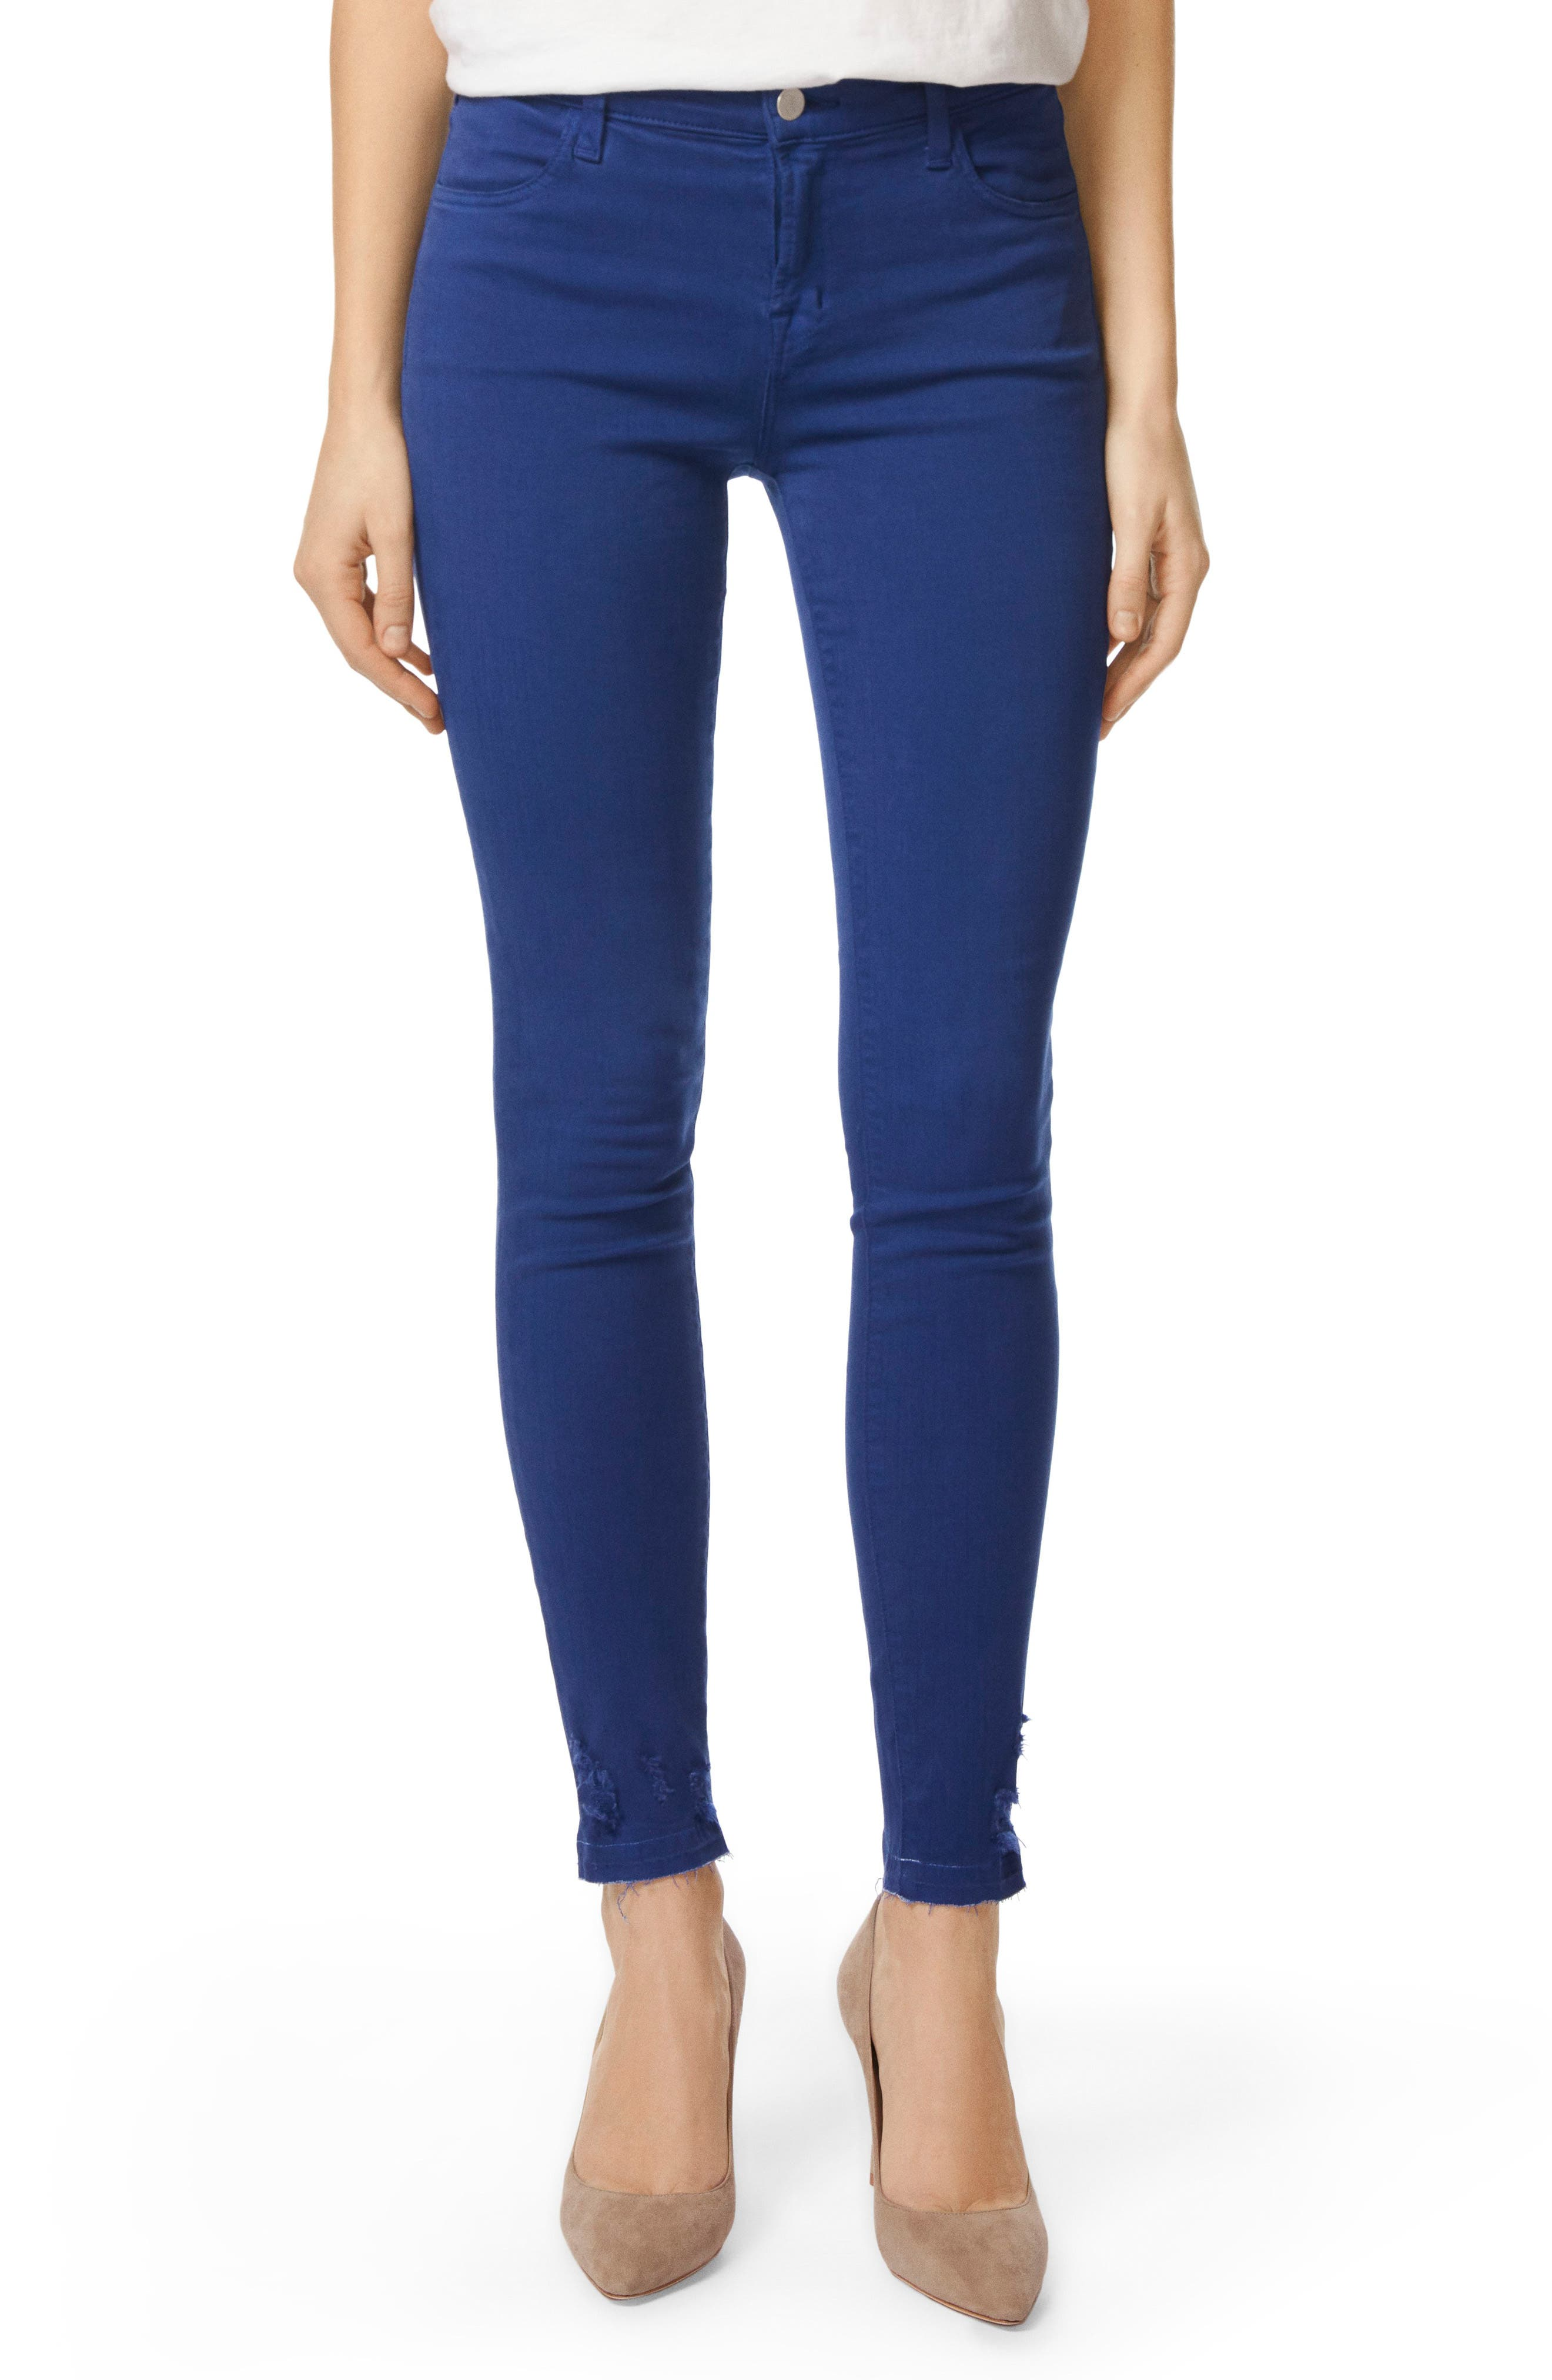 620 Mid Rise Super Skinny Jeans,                         Main,                         color, 436